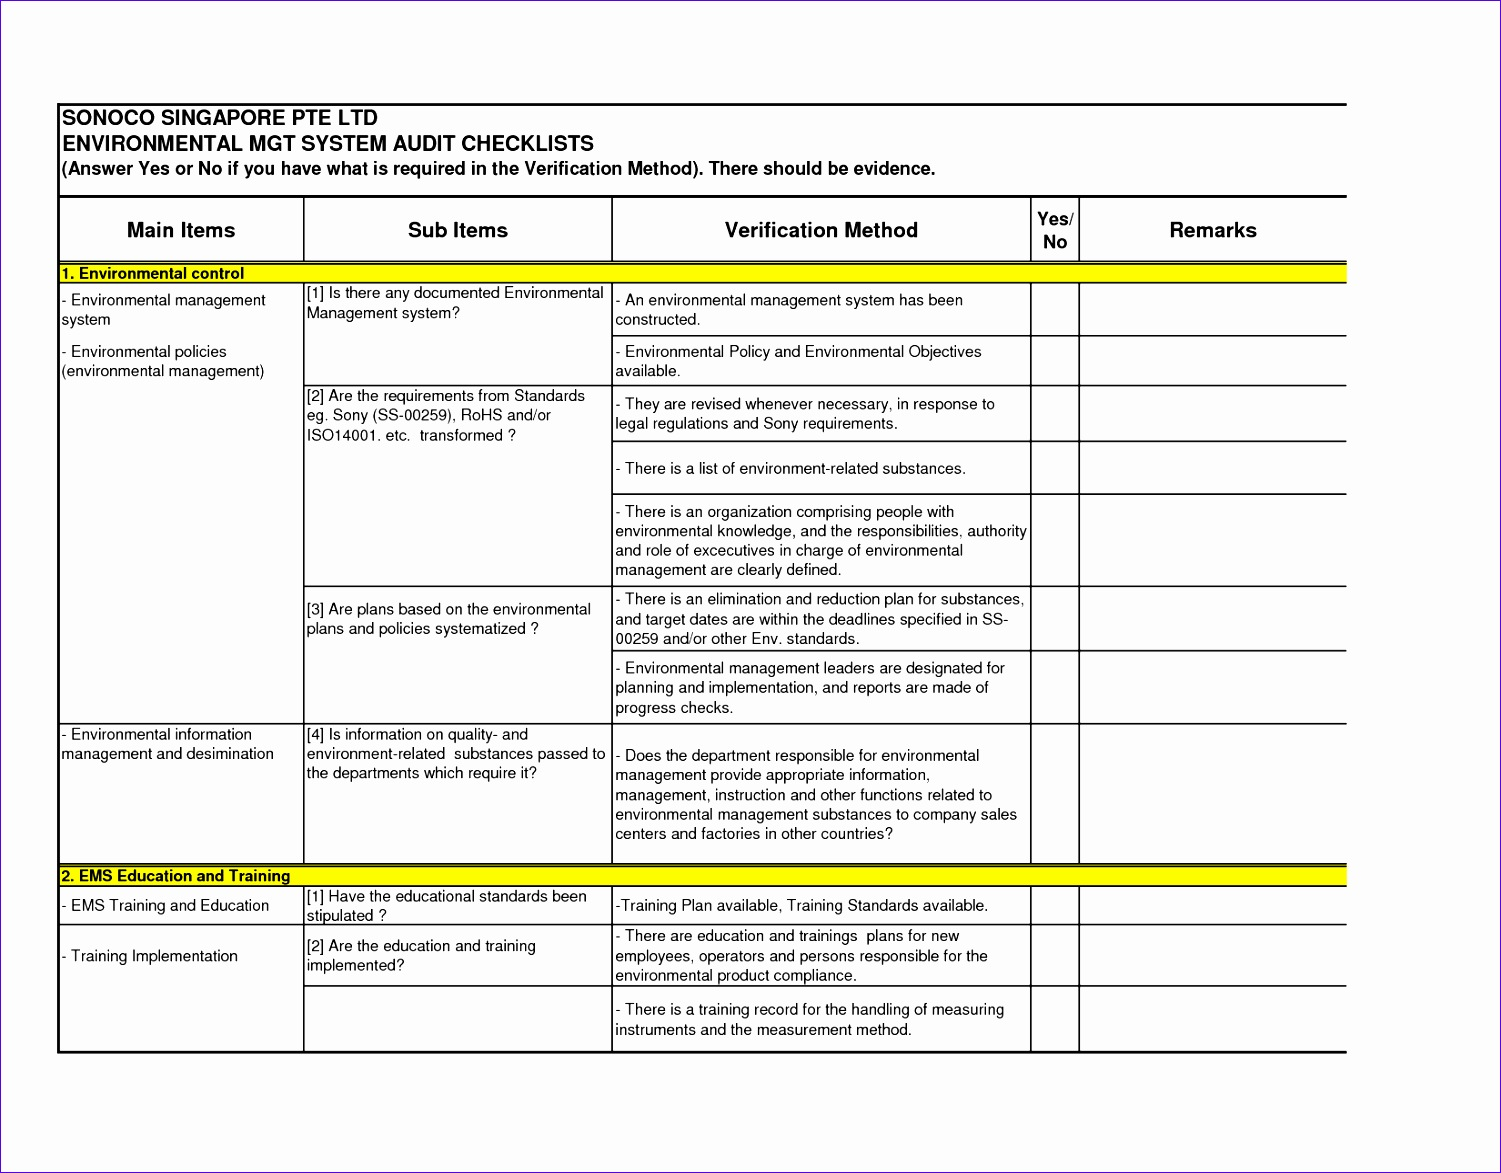 internal audit checklist template excel 6 Audit Checklist Template Excel - ExcelTemplates - ExcelTemplates